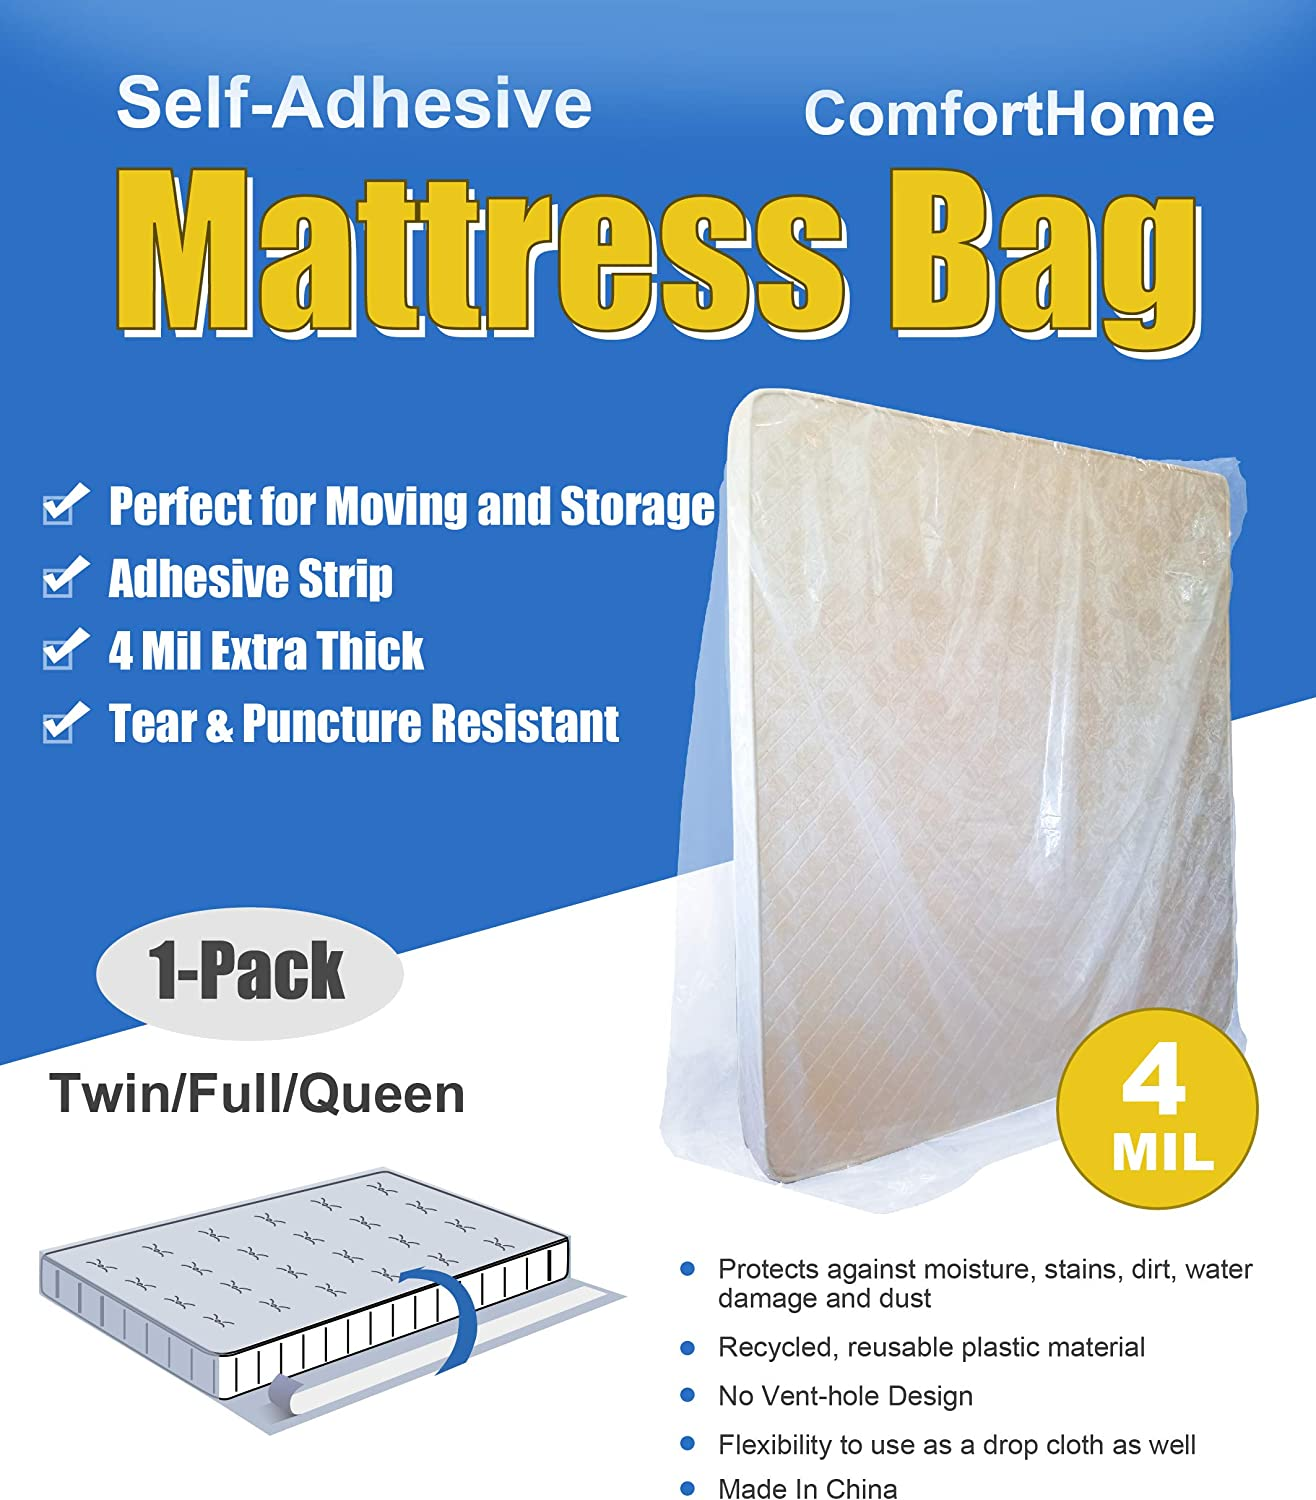 ComfortHome 4 Mil Extra Thick Sealable Mattress Bag with Adhesive Strip for Moving and Storage, Fits Twin, Full and Queen Size, 1 Pack